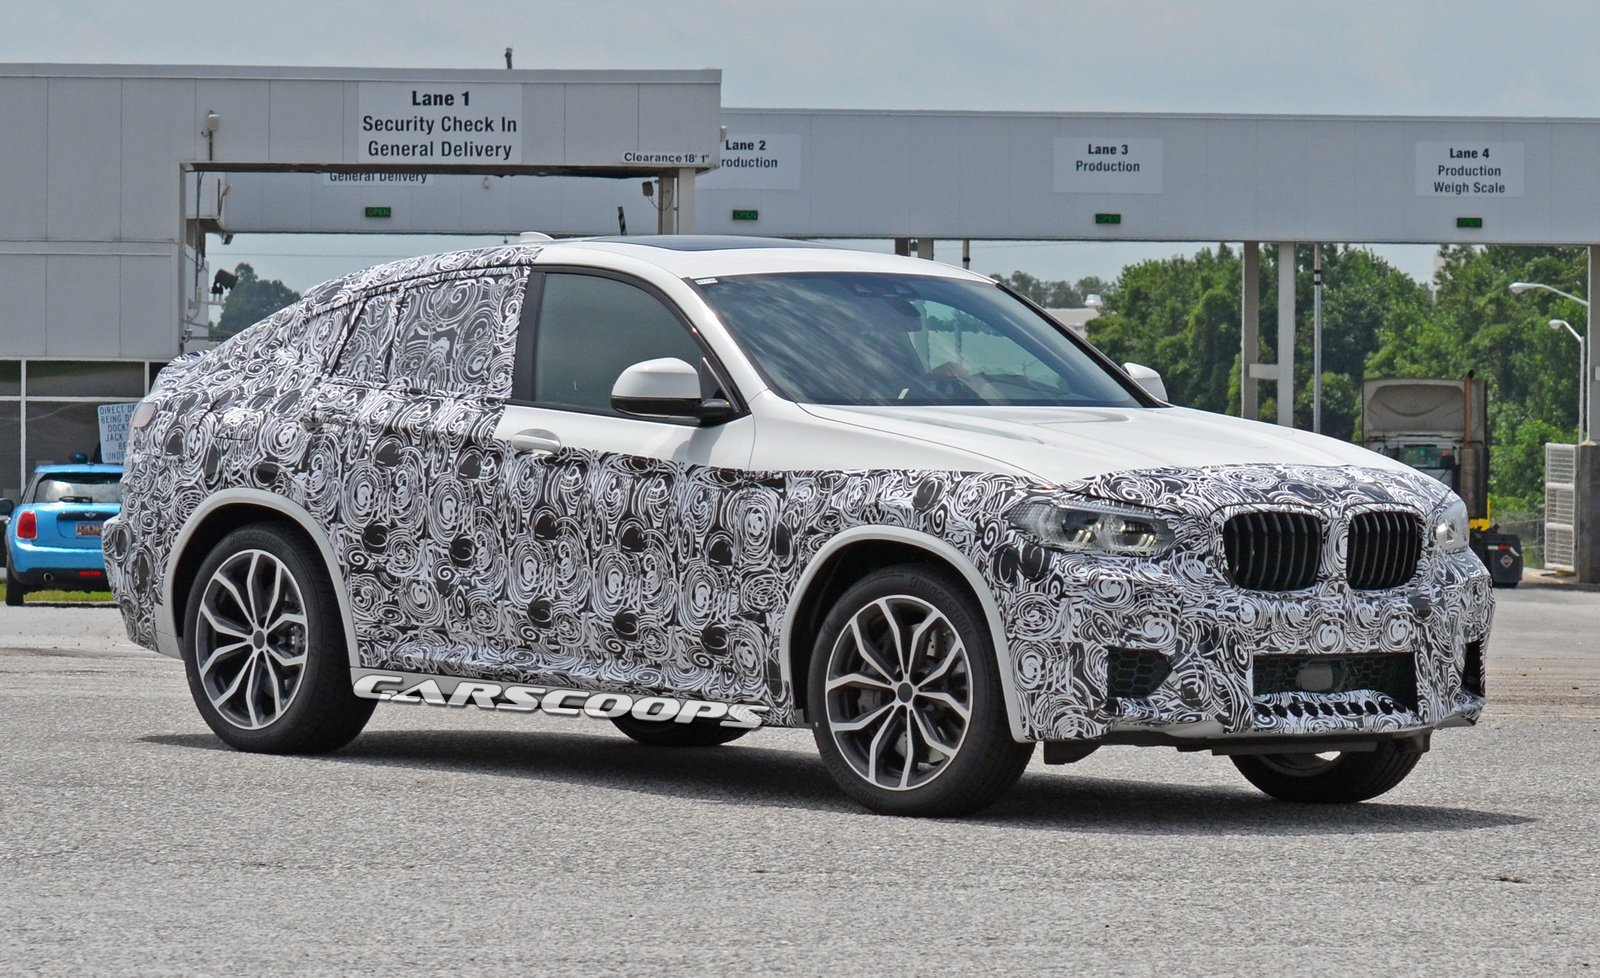 83 A 2020 Next Gen BMW X5 Suv Exterior and Interior